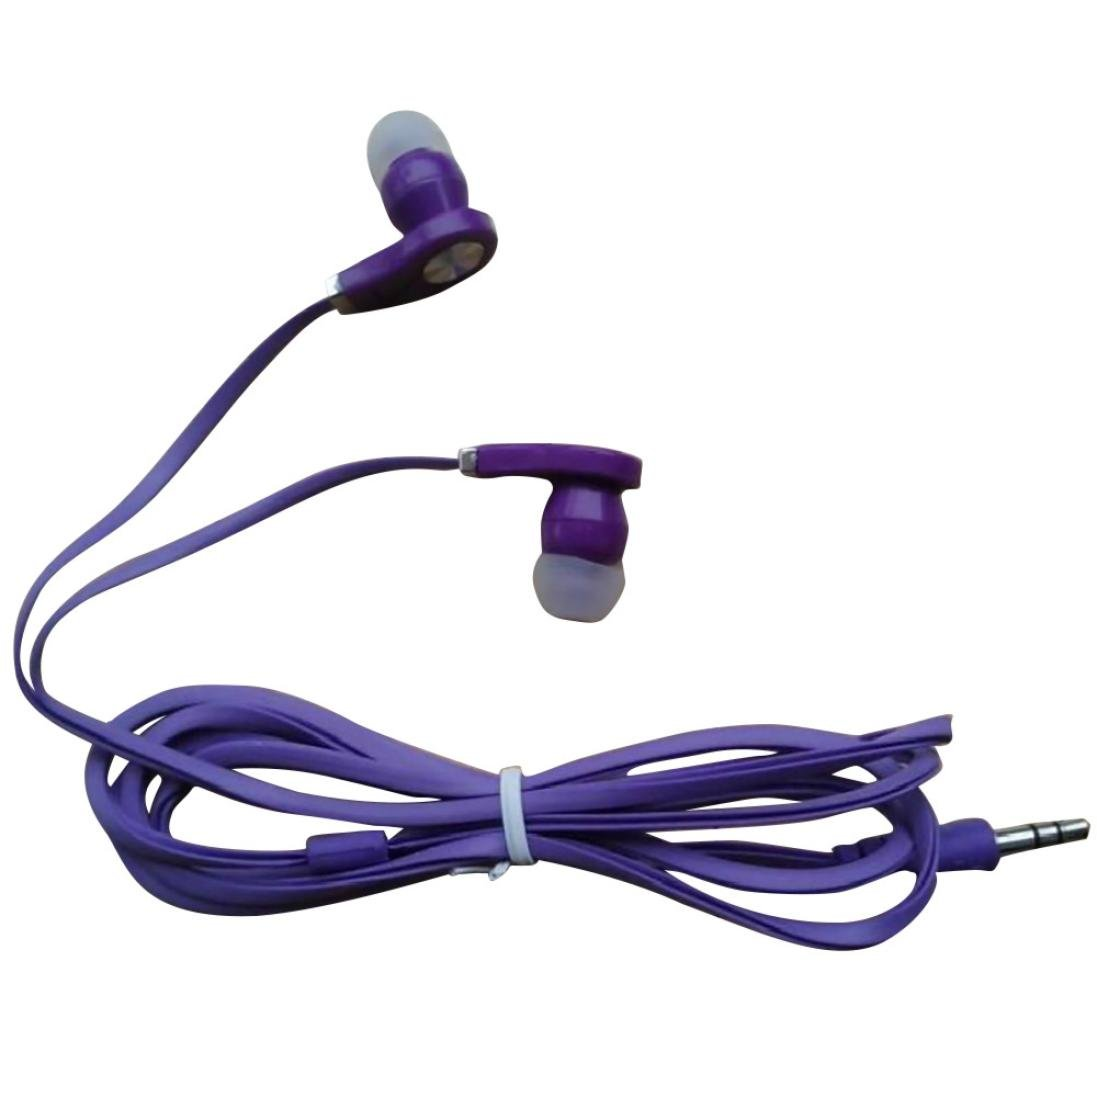 Creazy Universal 3.5mm In-Ear Stereo Earbuds Earphone With a 3.5 mm Audio Jack,Computer (Purple)